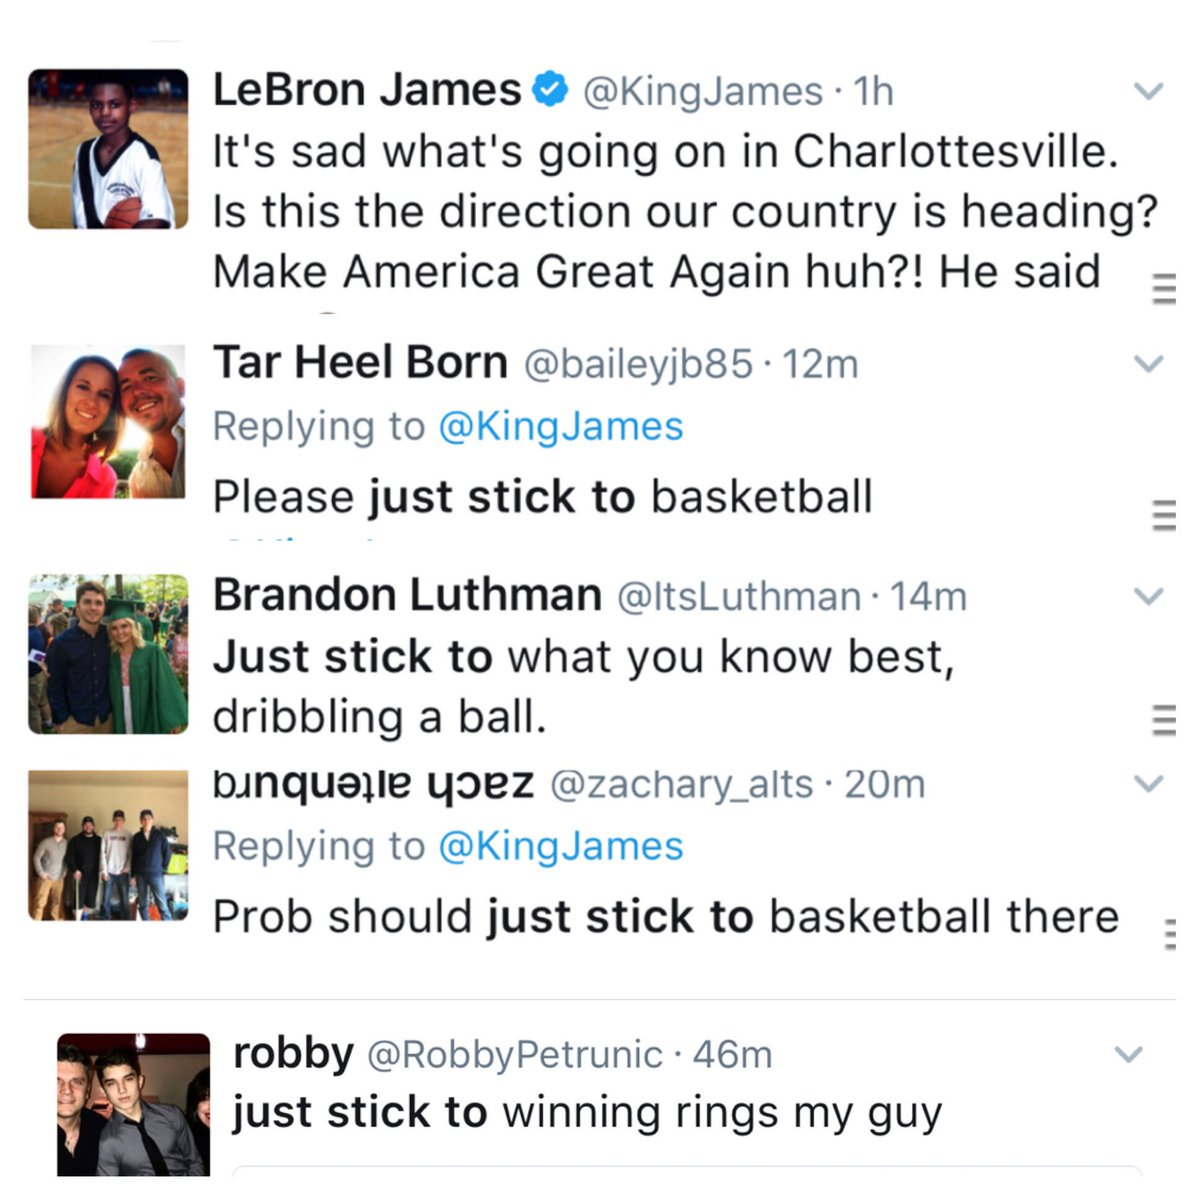 'Stay In Yo Place Boy' Twitter in full effect. How does making $$$$ disqualify your opinion about the country in which you live? And...